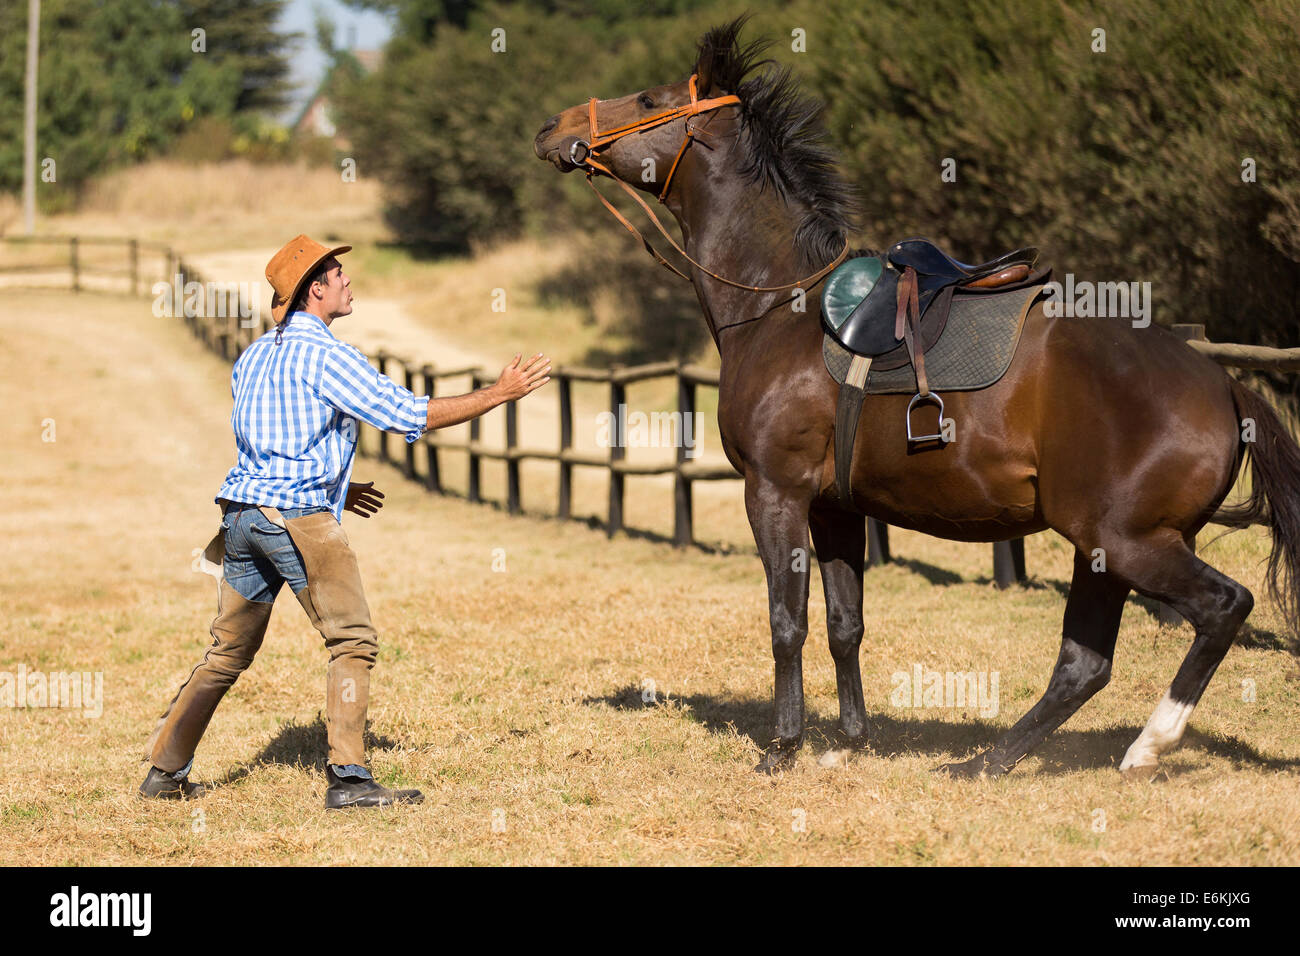 breeder trying to calm down his horse - Stock Image